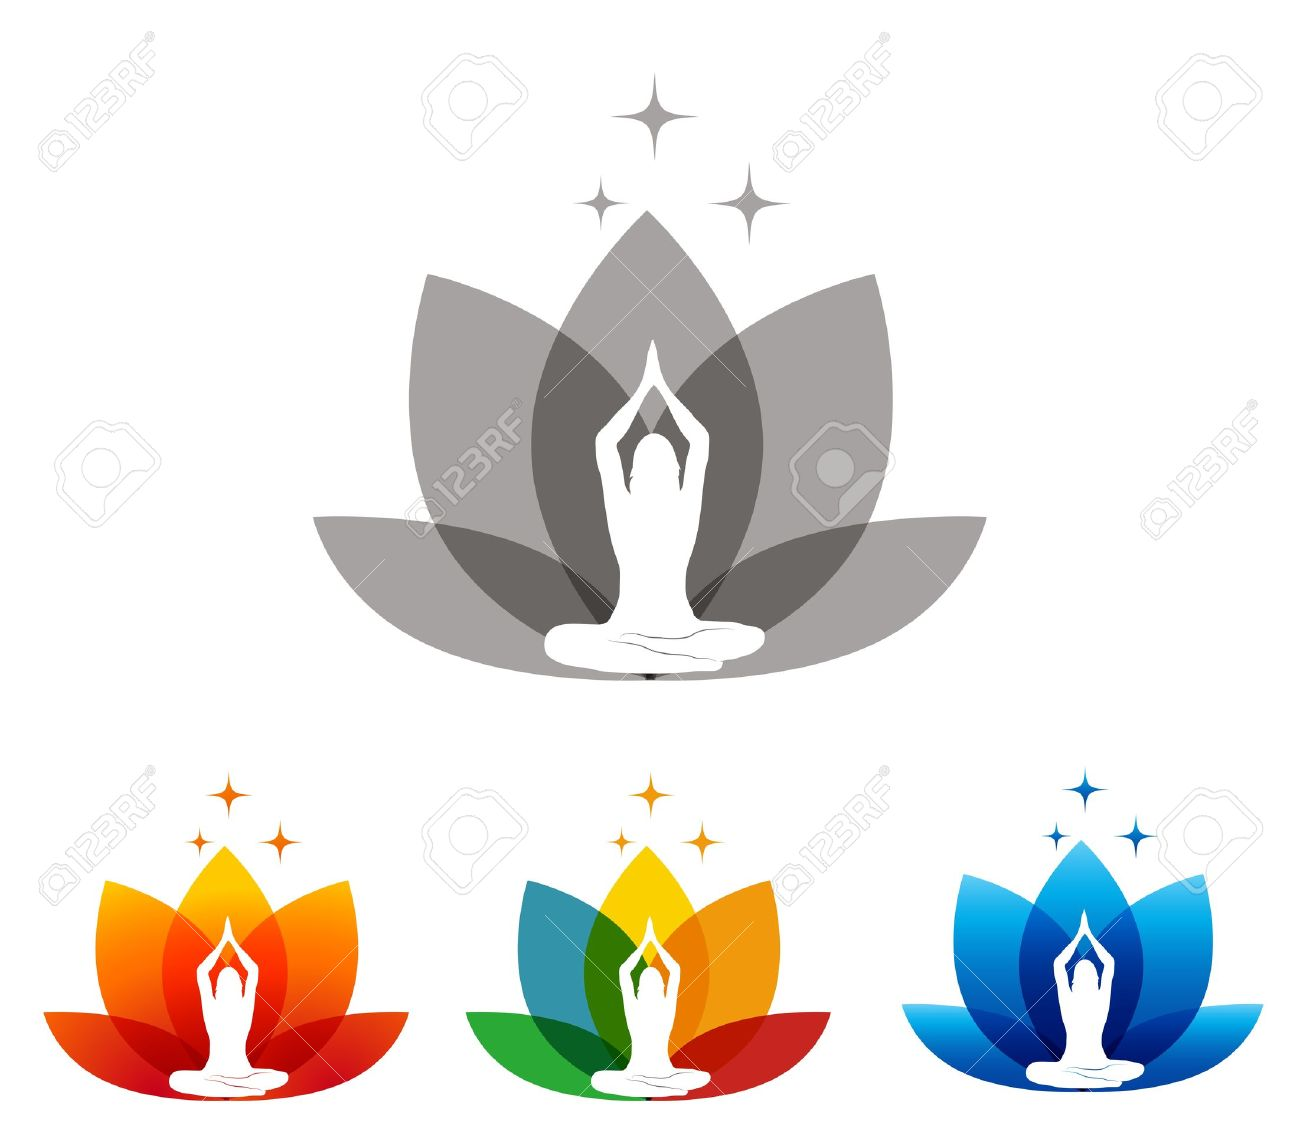 Lotus Flower And Woman In Yoga Pose Royalty Free Cliparts Vectors